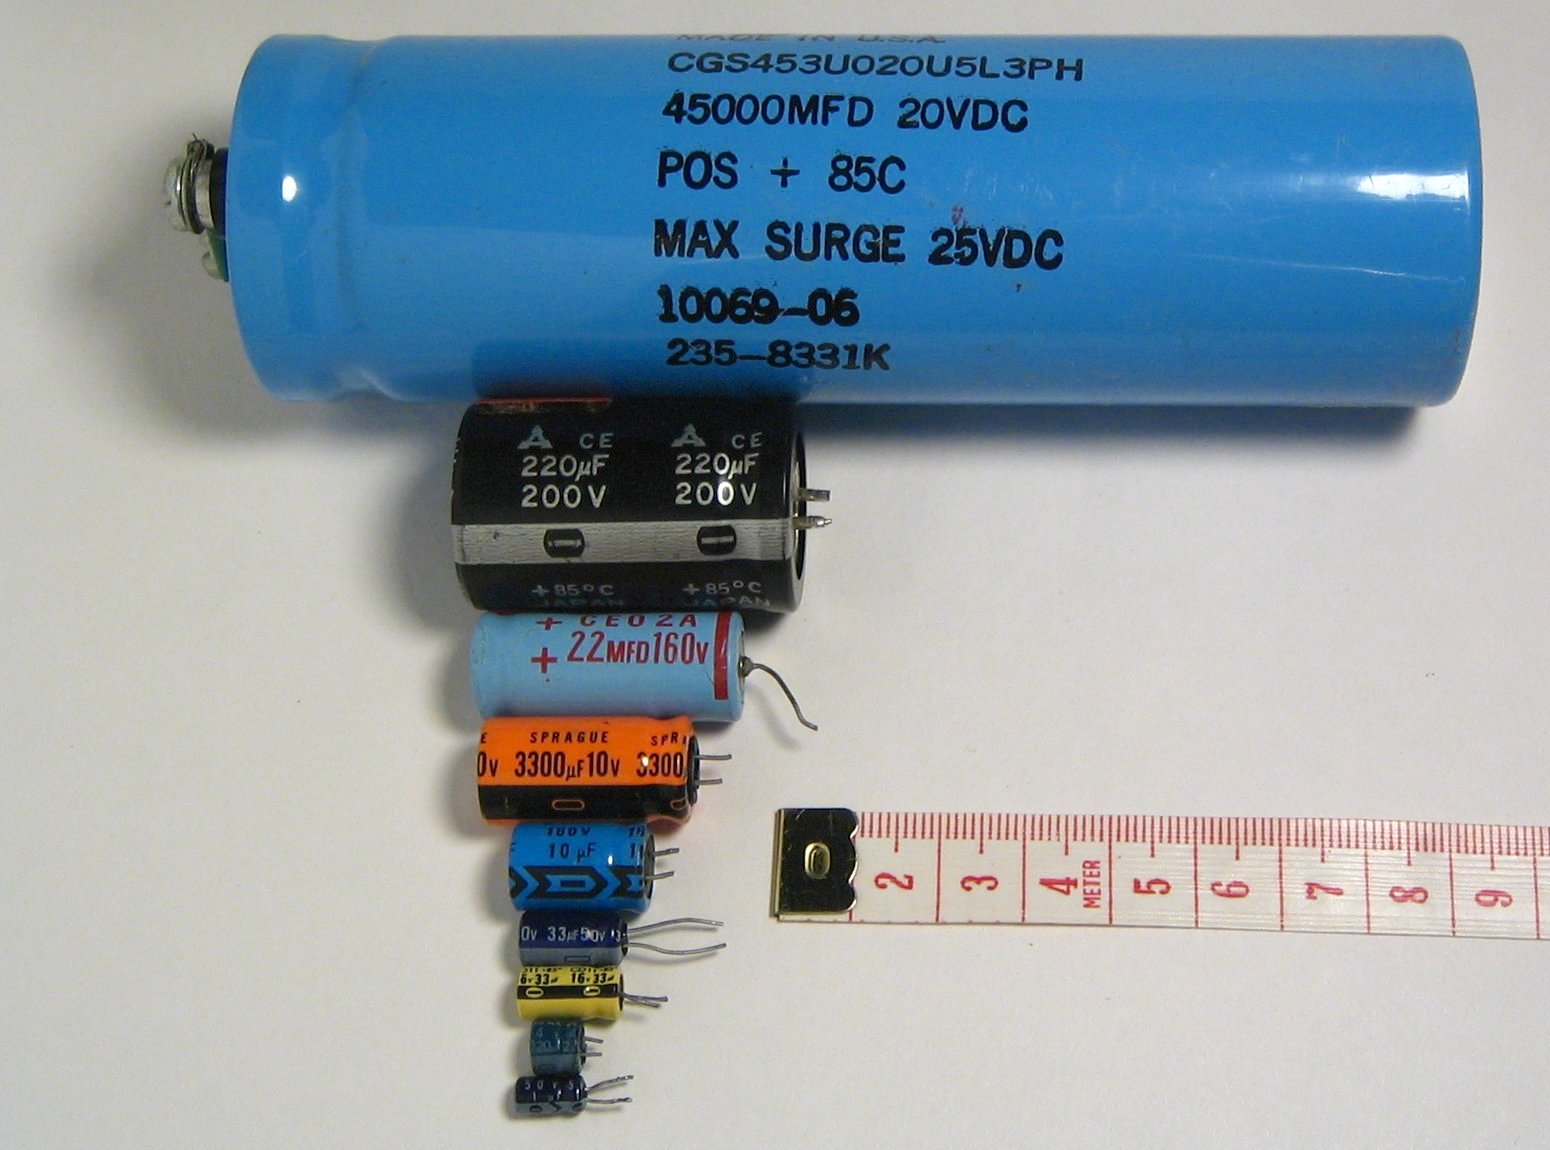 Resistor Color Codes additionally Electricity Circuit Symbols 2 Flash Cards besides Electronic Circuit Symbols November 9 in addition Split Phase Ac Induction Motor Operation With Wiring Diagram also How To Wire Up A Single Phase Electric Blower Motor. on power capacitor symbol